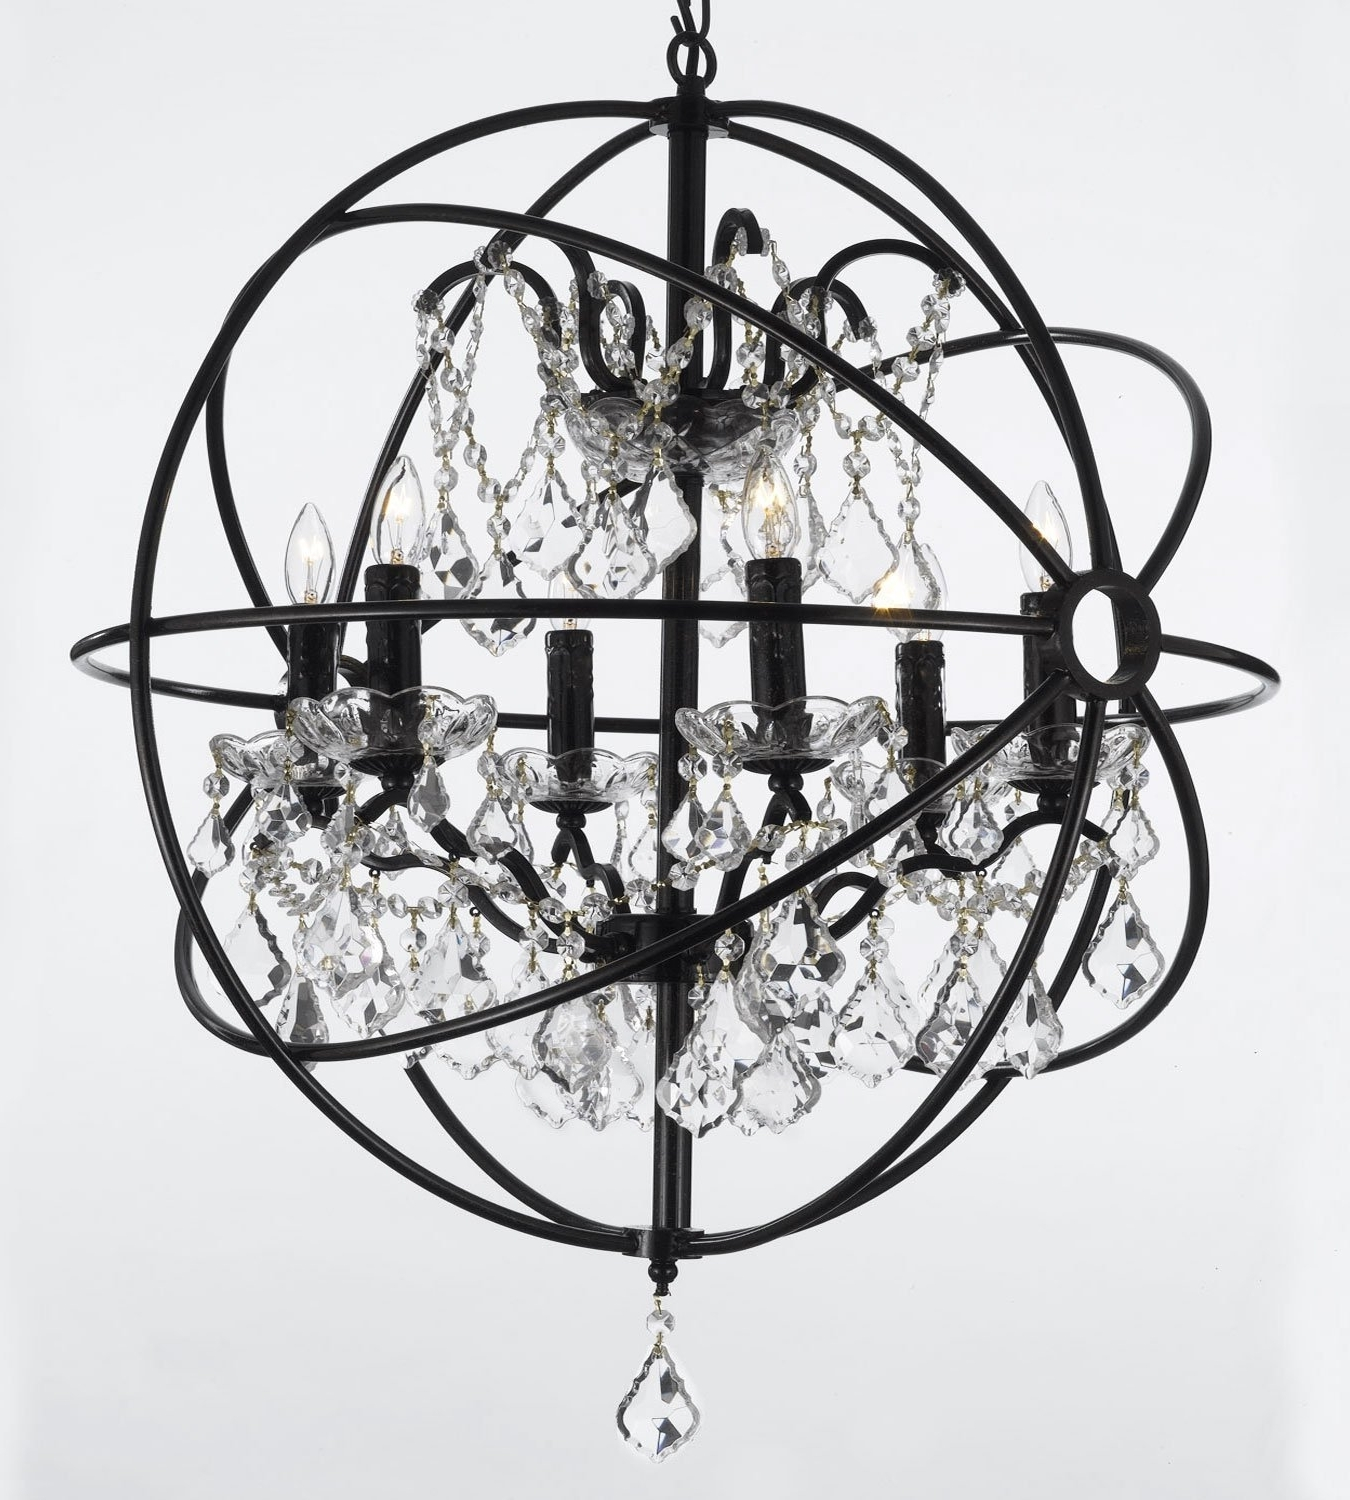 2017 Foucault's Orb Wrought Iron Crystal Chandelier Lighting Country Throughout Sphere Chandelier (View 3 of 15)